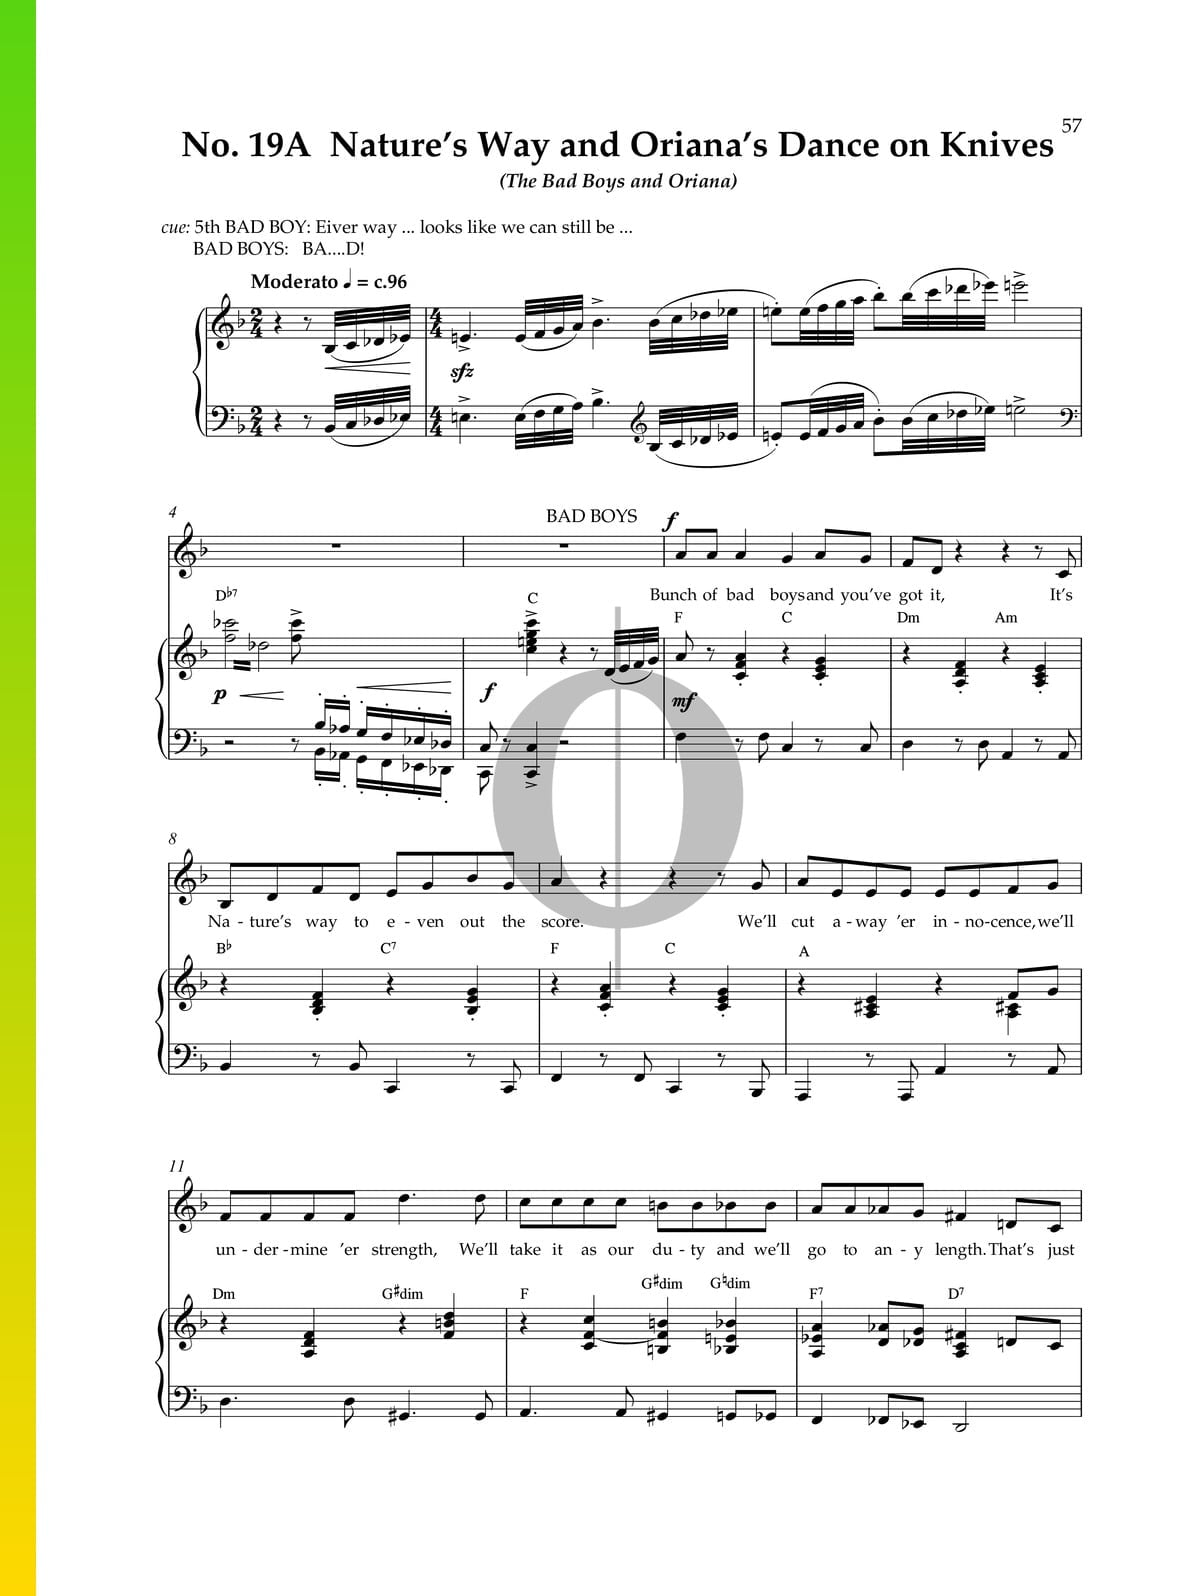 Natures Way And Orianas Dance On Knives Sheet Music